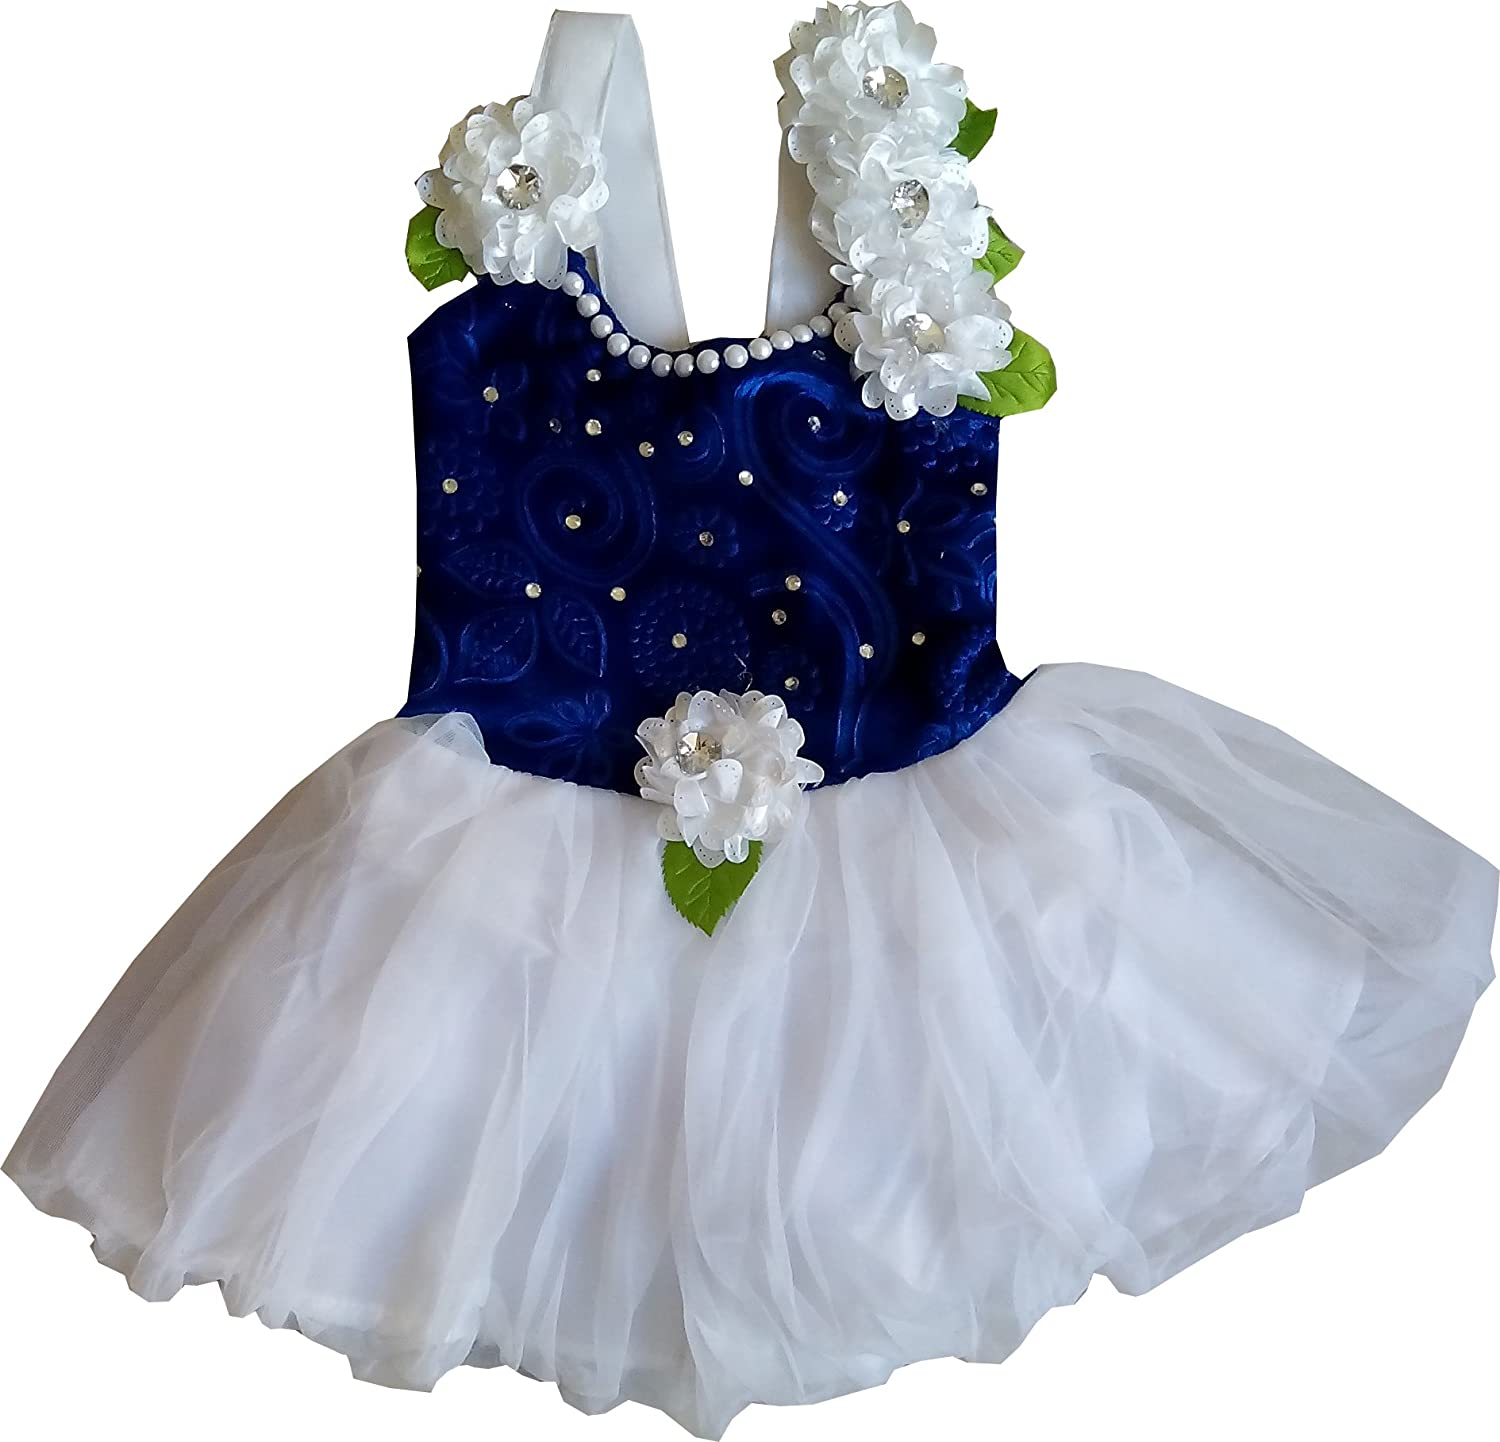 Beautiful Dressing Gown 3 6 Months Pattern - Images for wedding gown ...